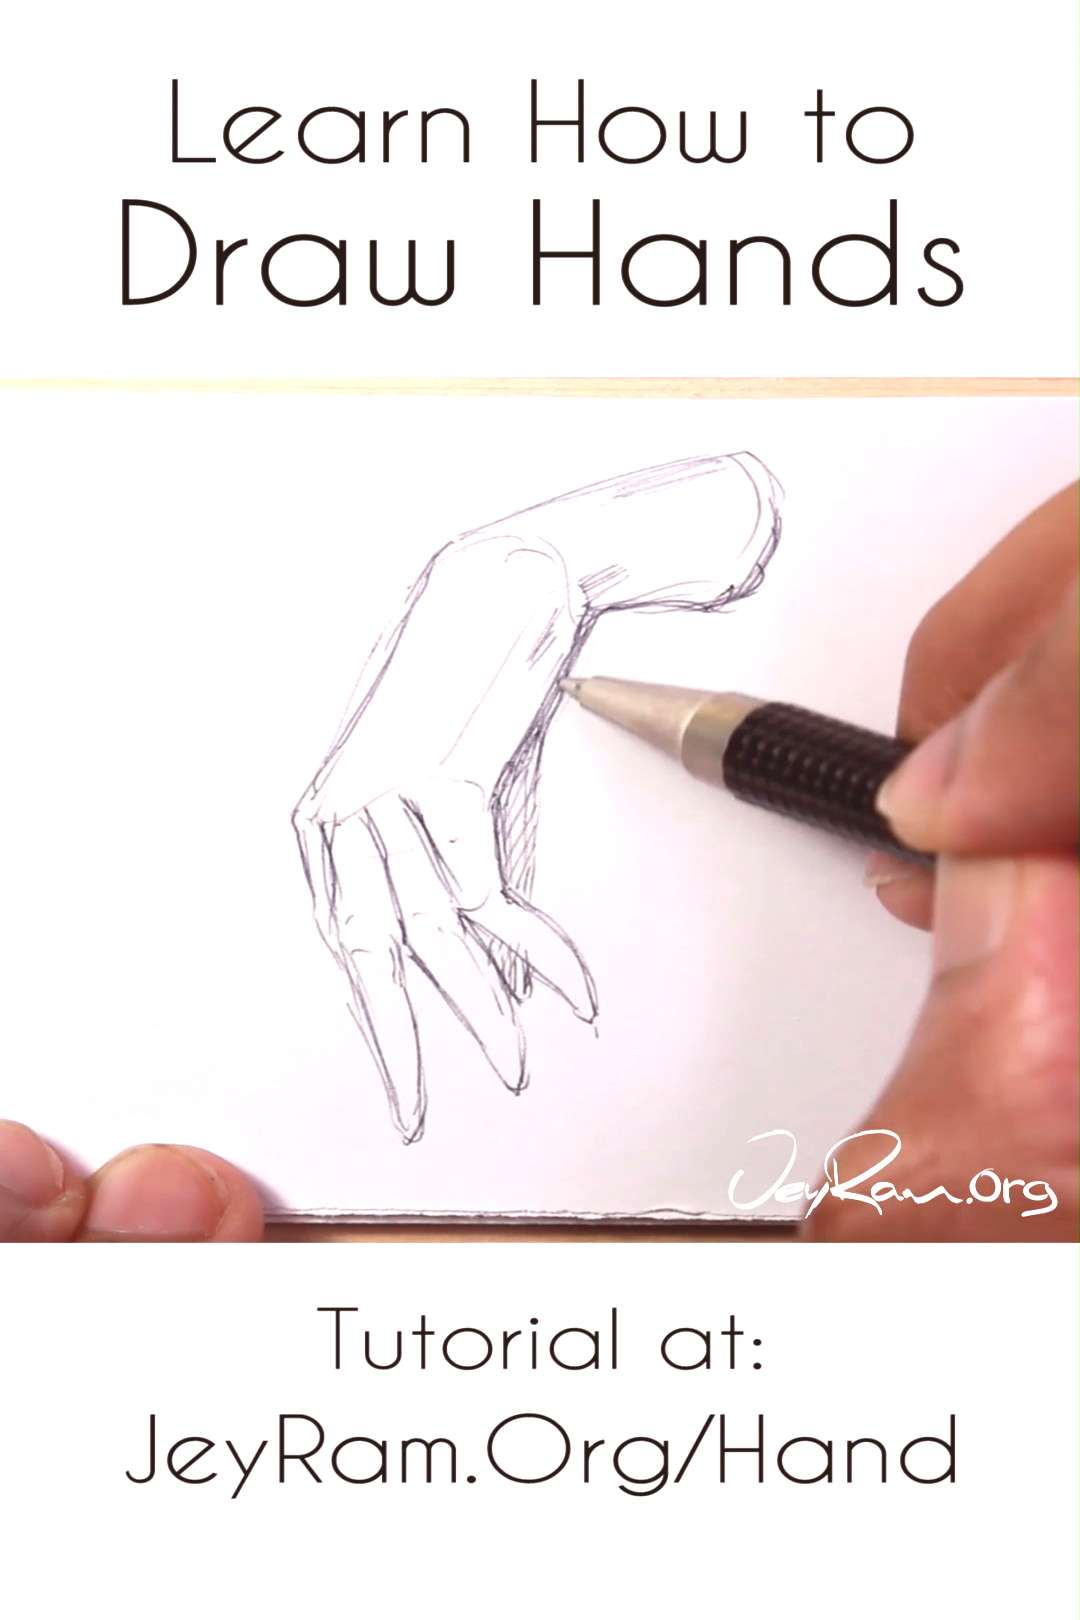 Learn how to draw hands with this step by step tutorial (on the site). There are 4 stages of unders